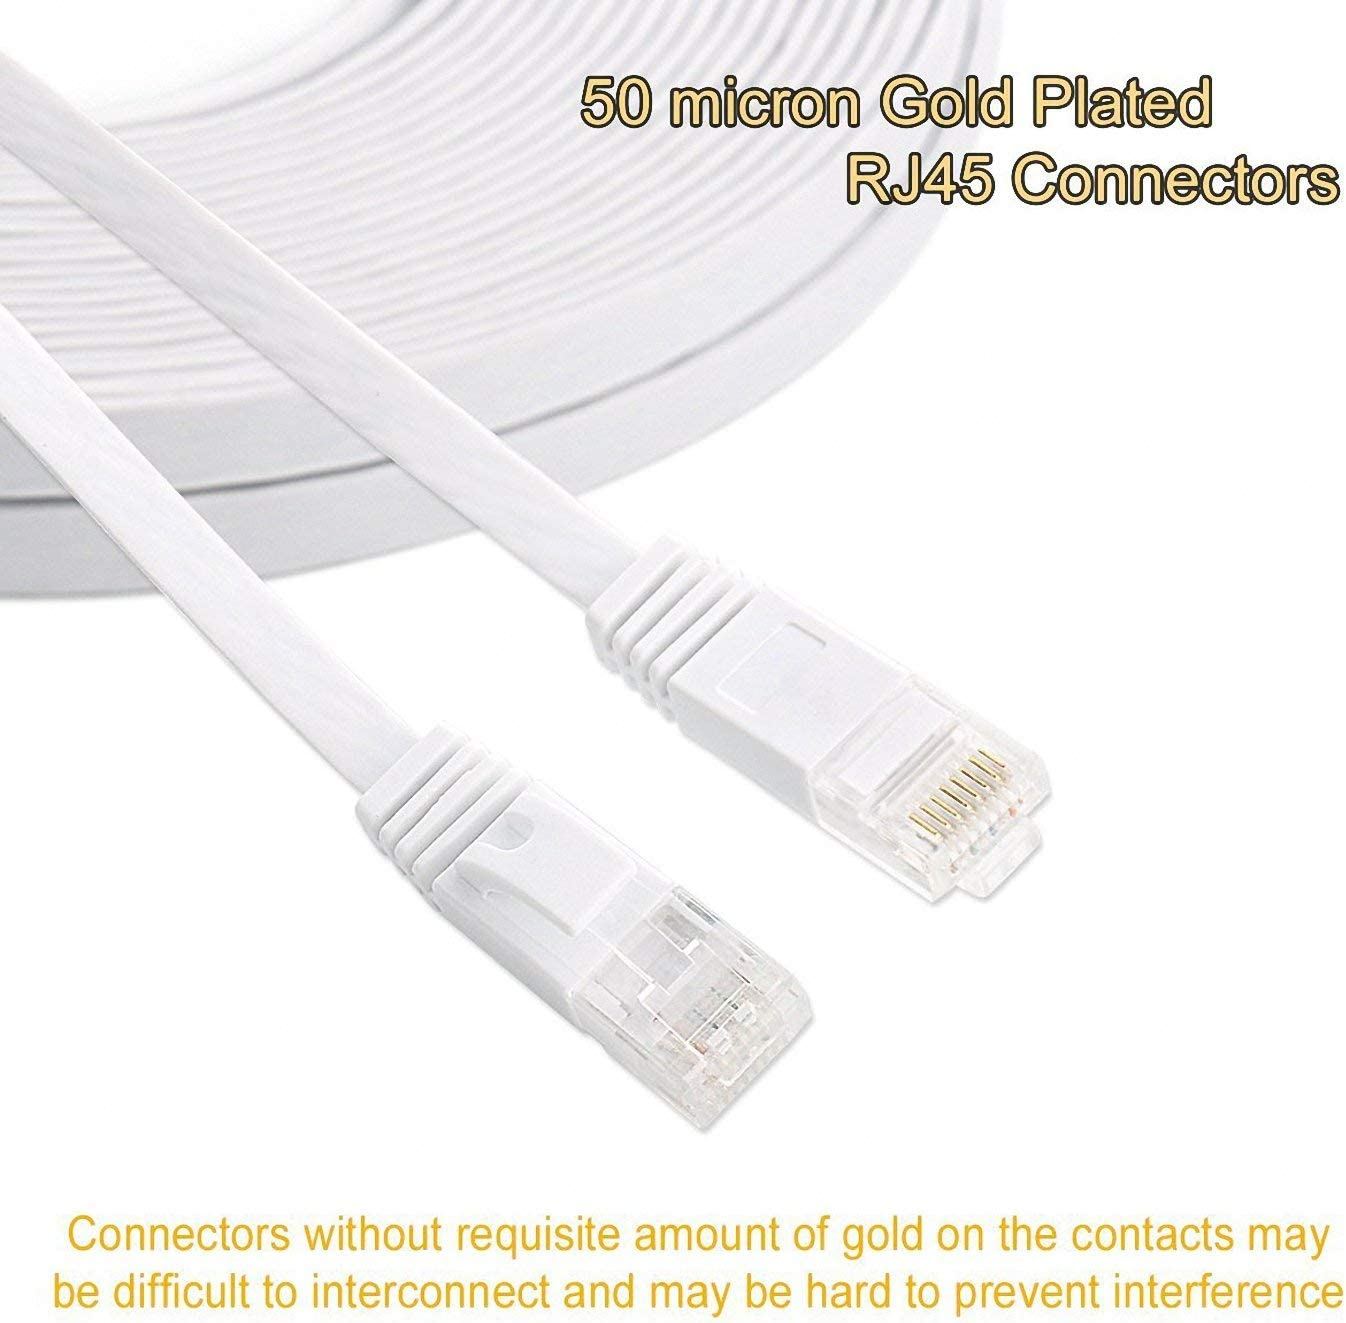 Ethernet Cable Cat6 200 Ft Flat with Cable Clips Slim Network Cable comtelek cat 6 Ethernet Rj45 Patch Cable 60 Meters 200 Feet Black Thin Internet Computer Cable